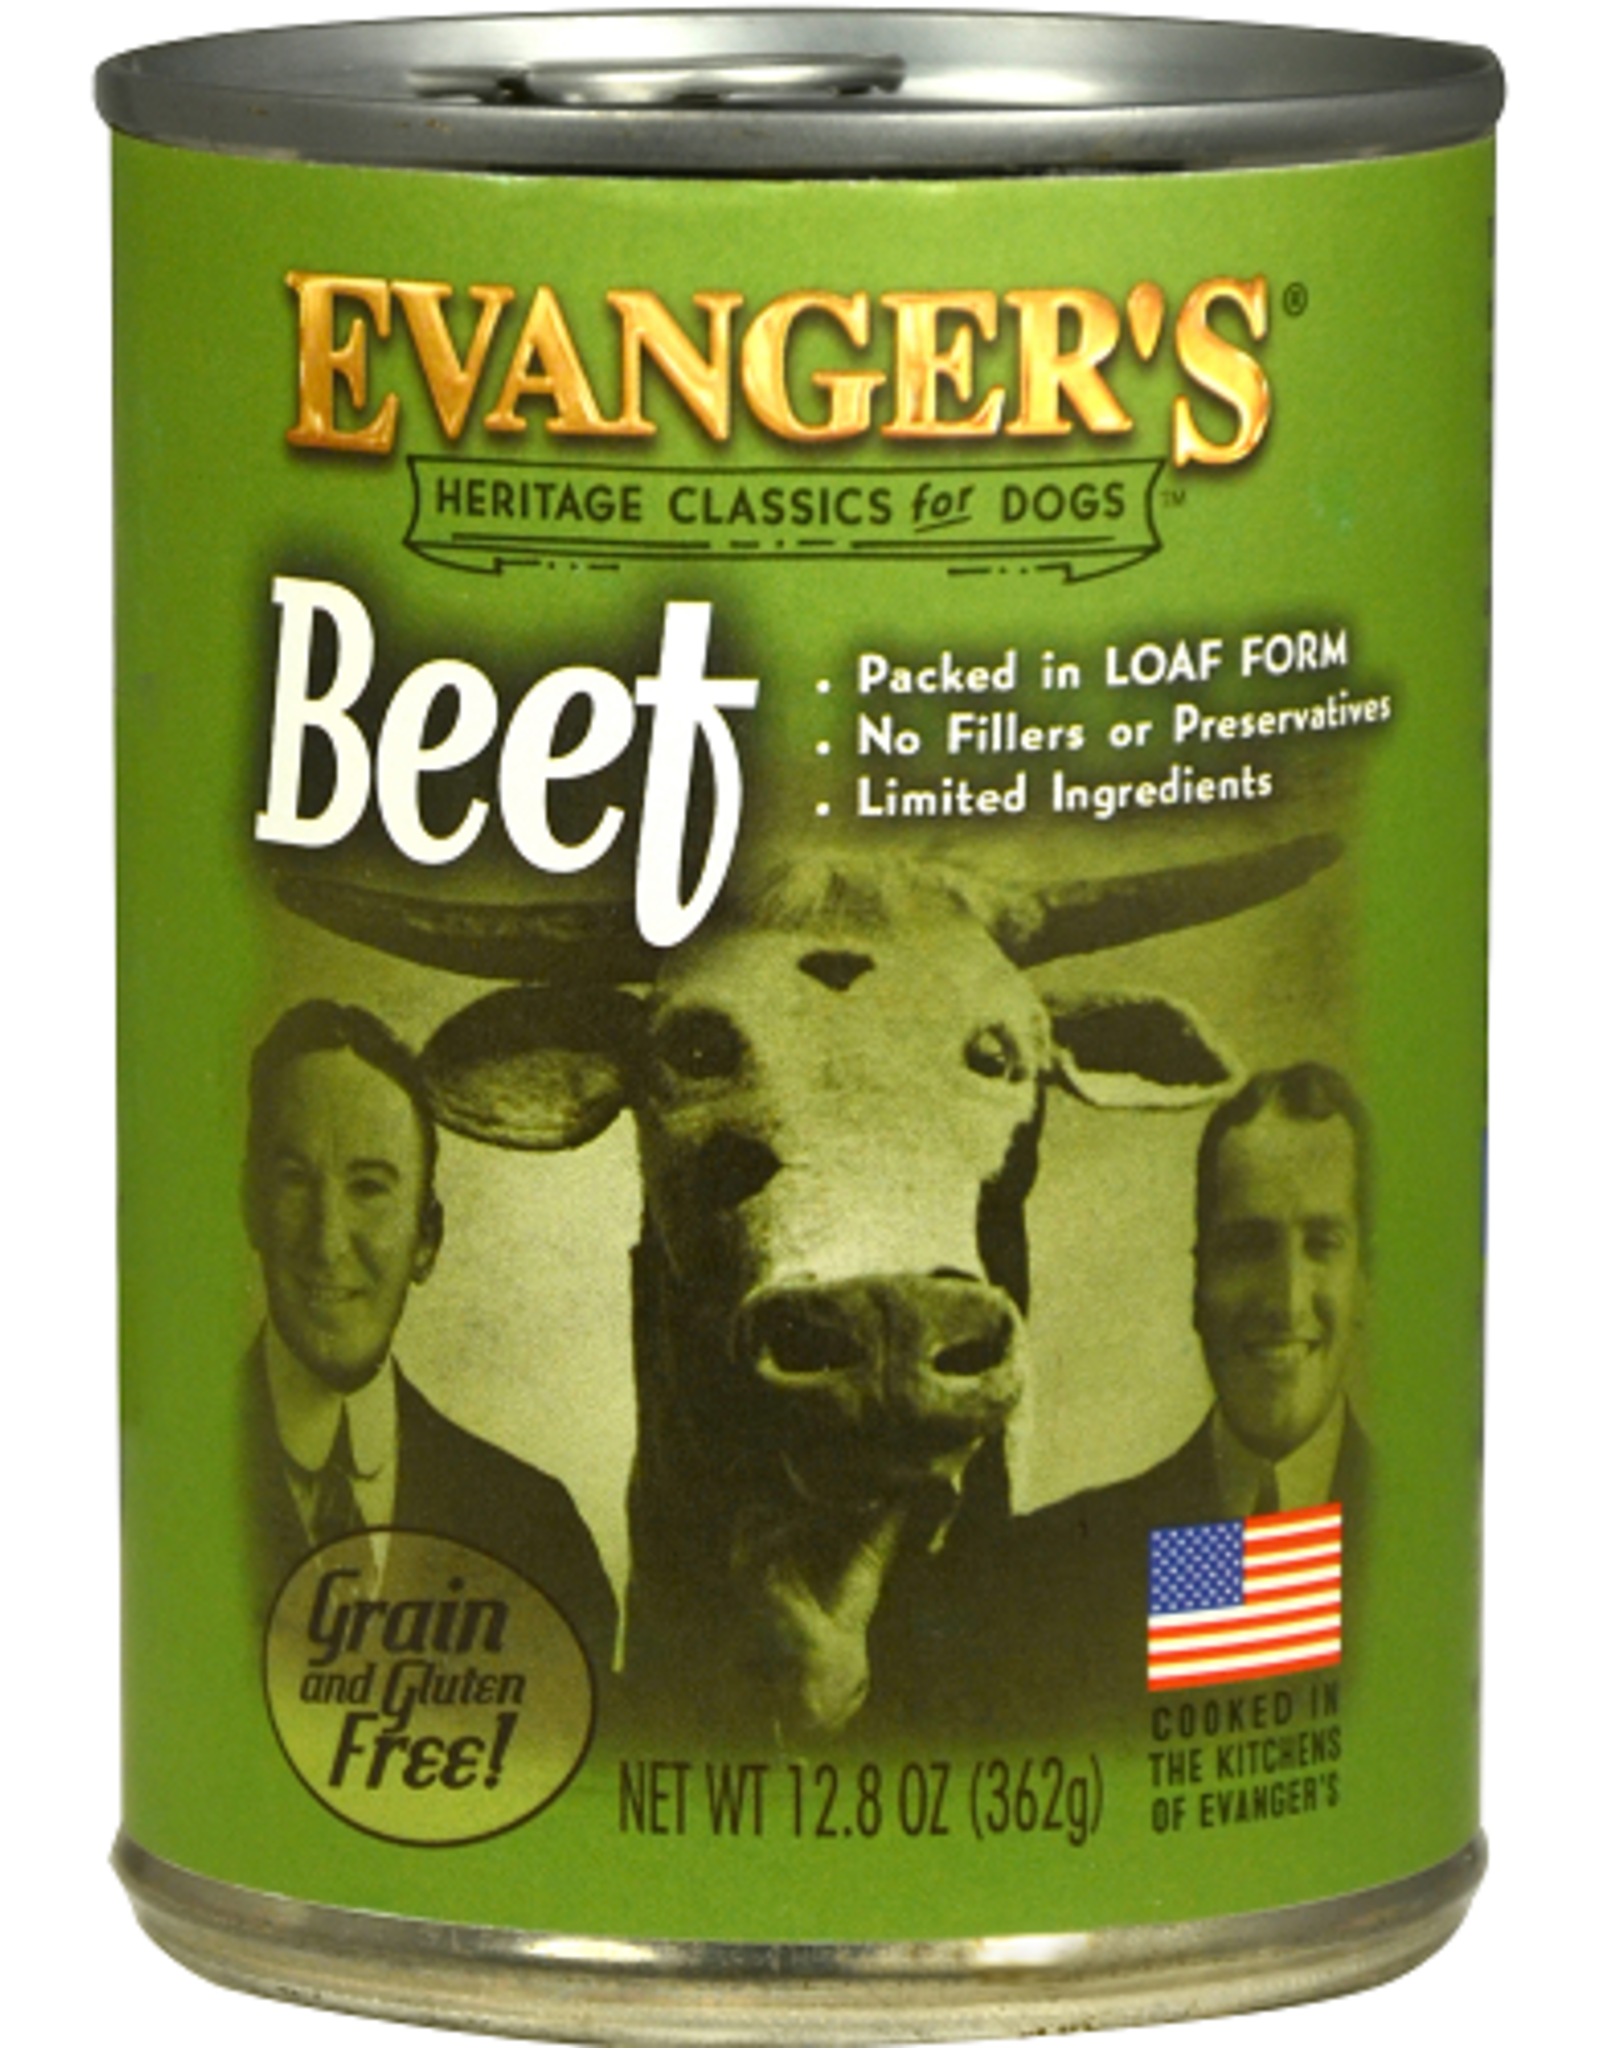 EVANGER'S EVANGERS CLASSIC BEEF 13OZ CAN